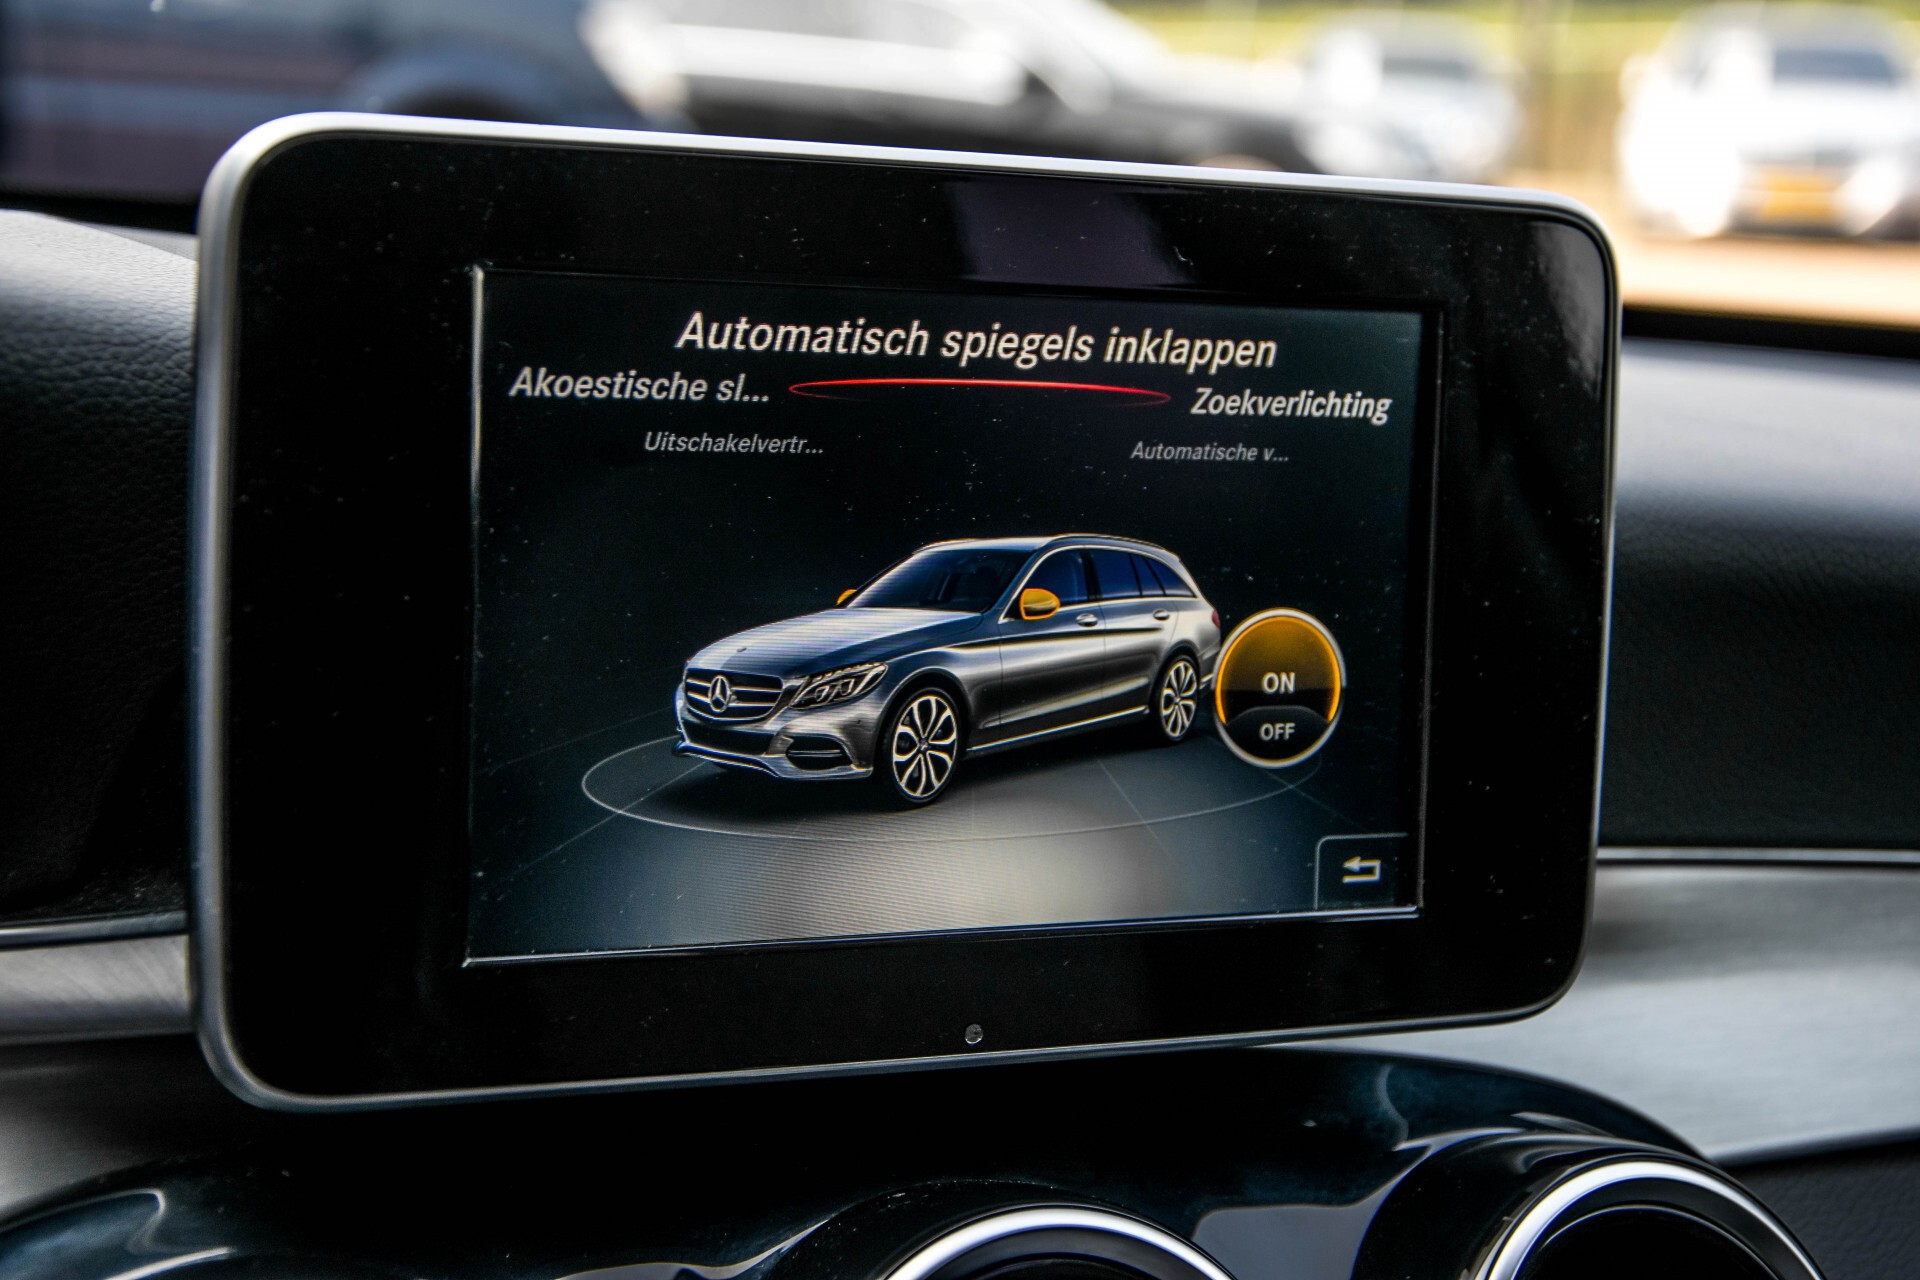 Mercedes-Benz C-Klasse Estate 180 Avantgarde LED/Navi/Privacyglas/Pts/Aut-koffer Aut7 Foto 24